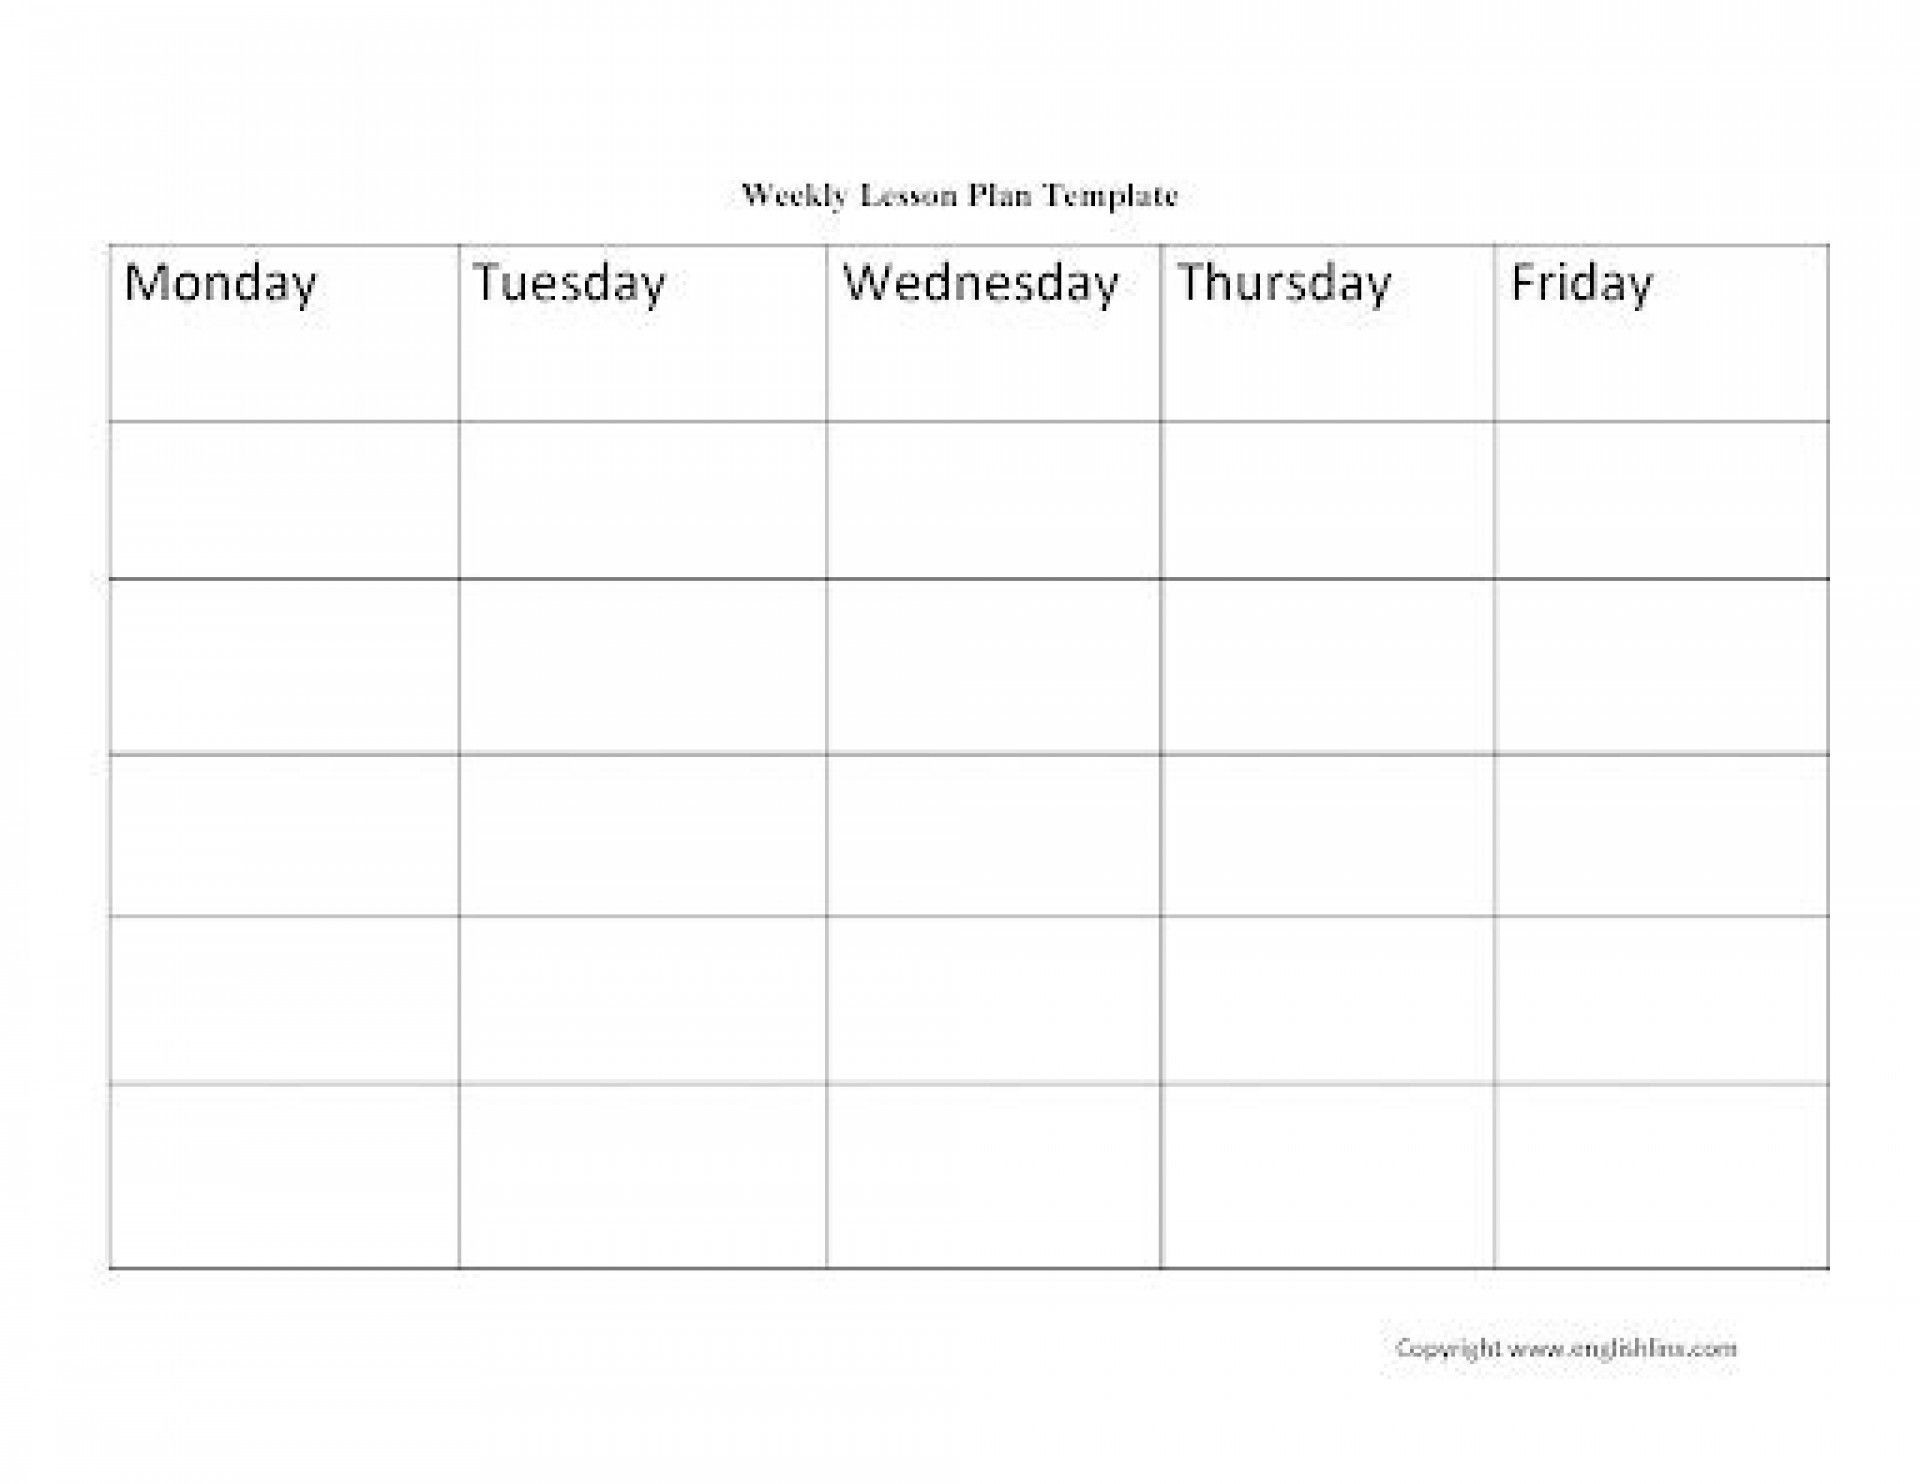 001 Top Printable Lesson Plan Template Weekly Photo  Blank Pdf Monthly Free Preschool1920